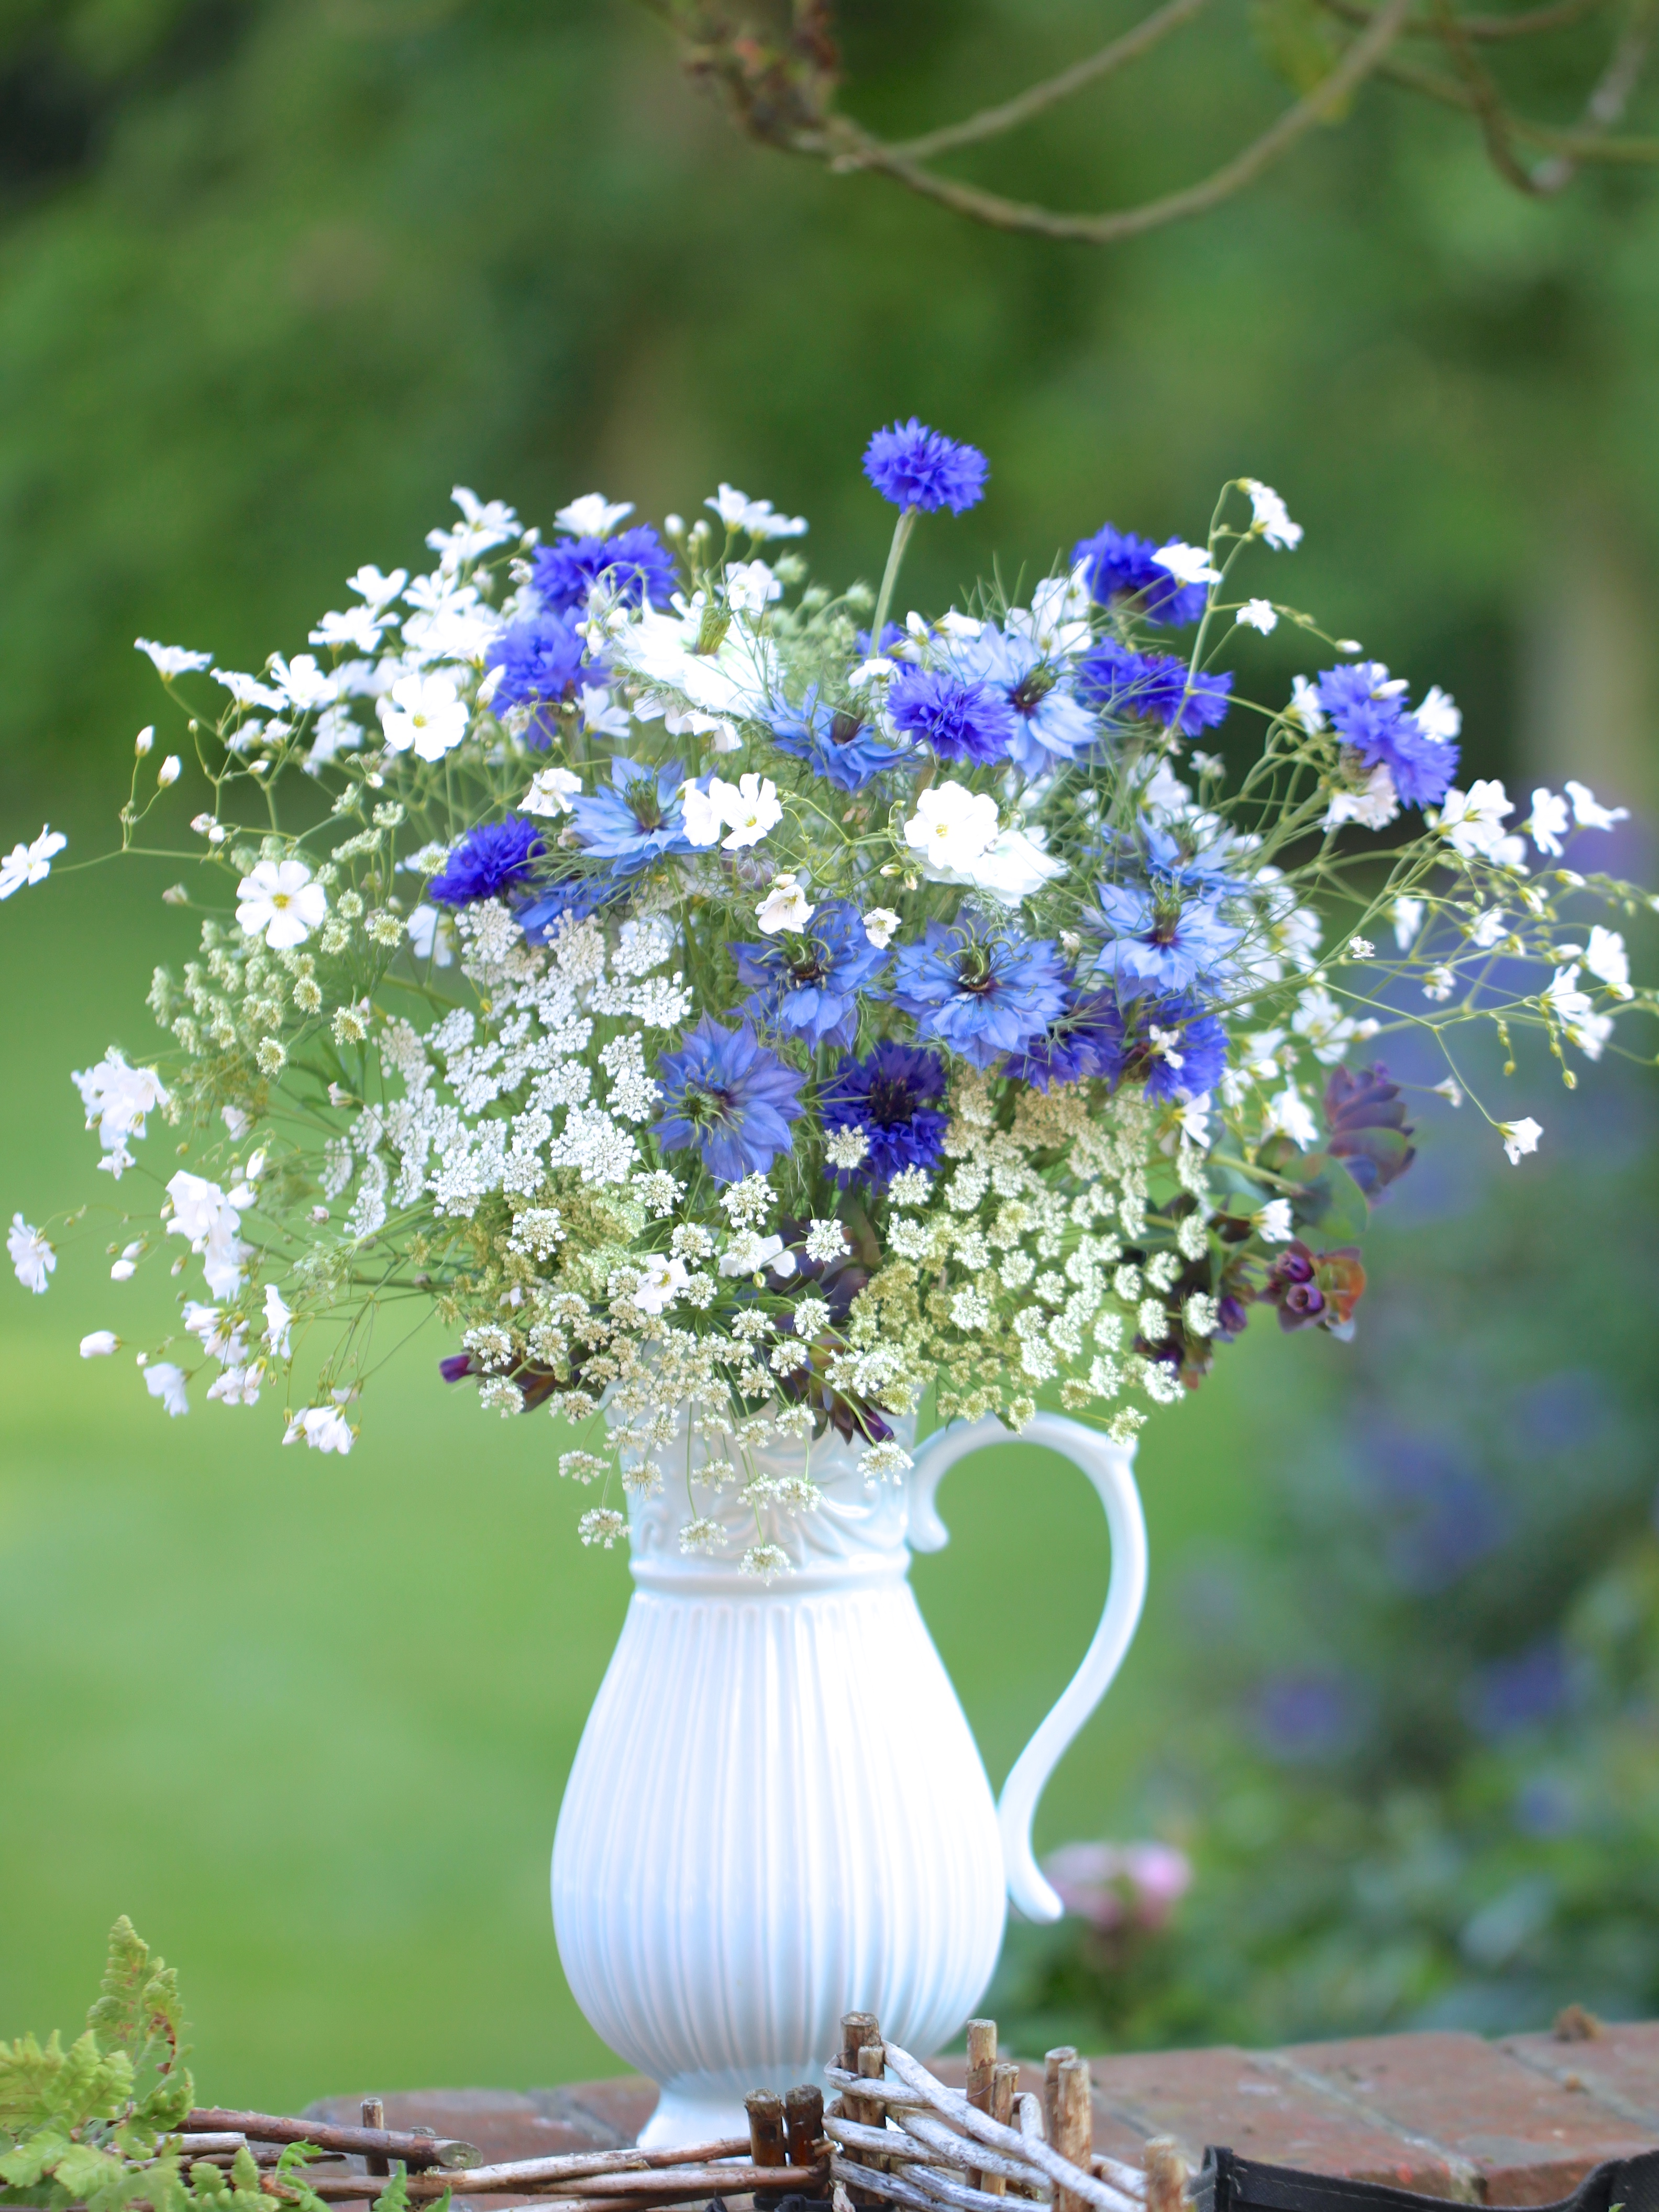 In a vase on tuesday british flowers weekindulging floral passions british flowers week hardy annuals reviewsmspy